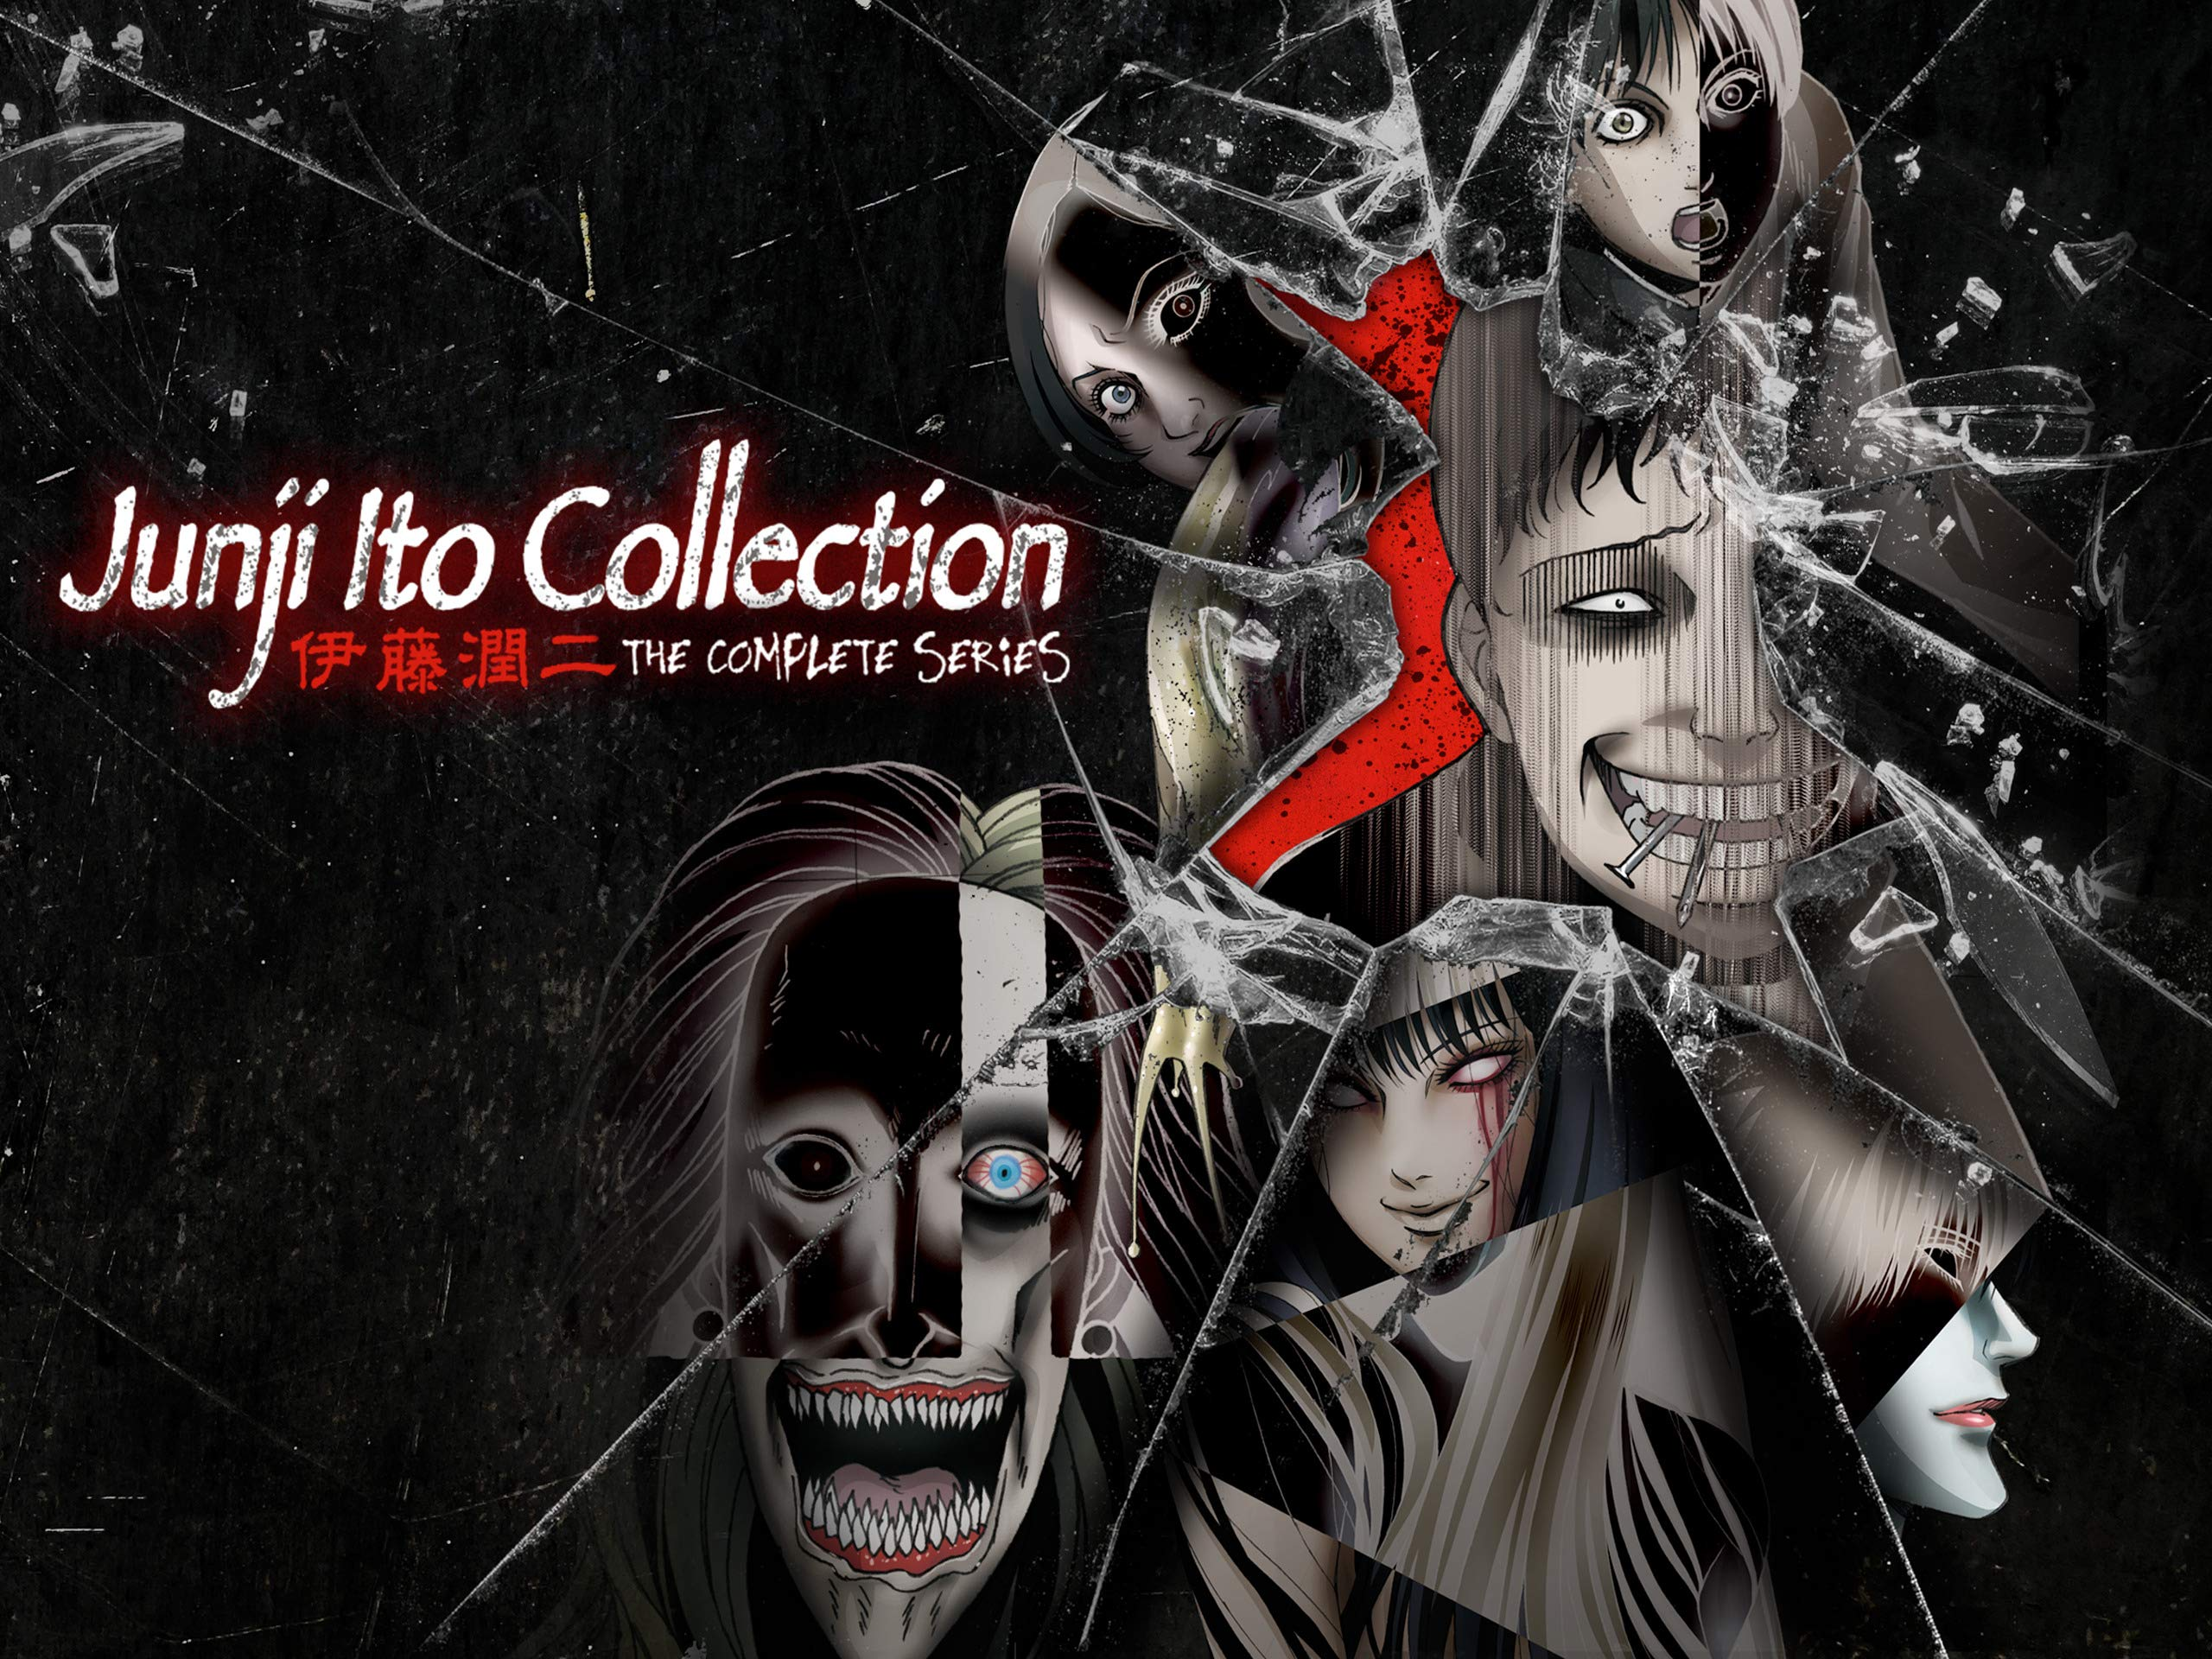 Watch Junji Ito Collection | Prime Video